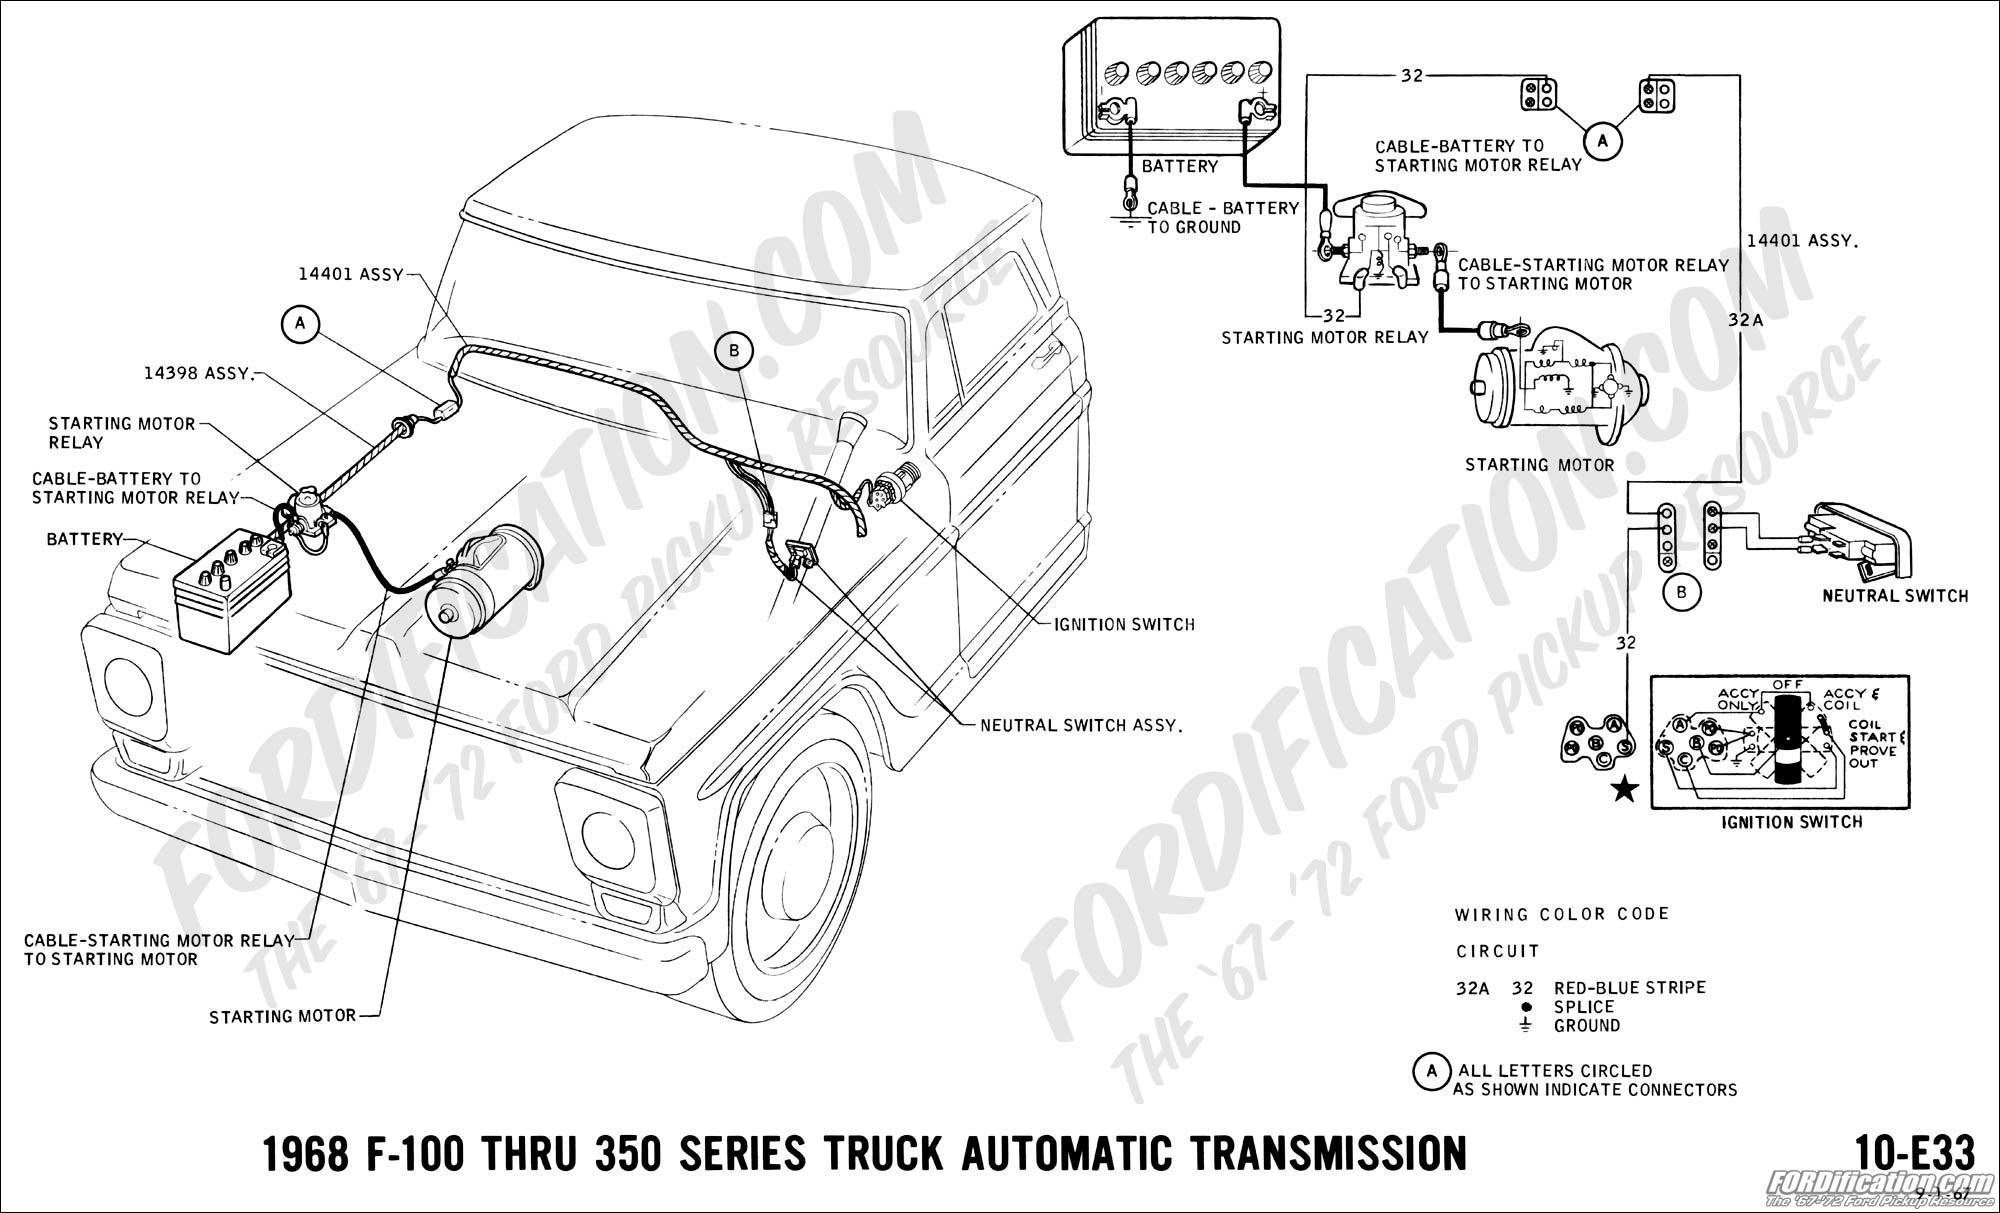 1968 Mustang Neutral Safety Switch Wiring Diagram | Wiring Diagram - 4L60E Neutral Safety Switch Wiring Diagram